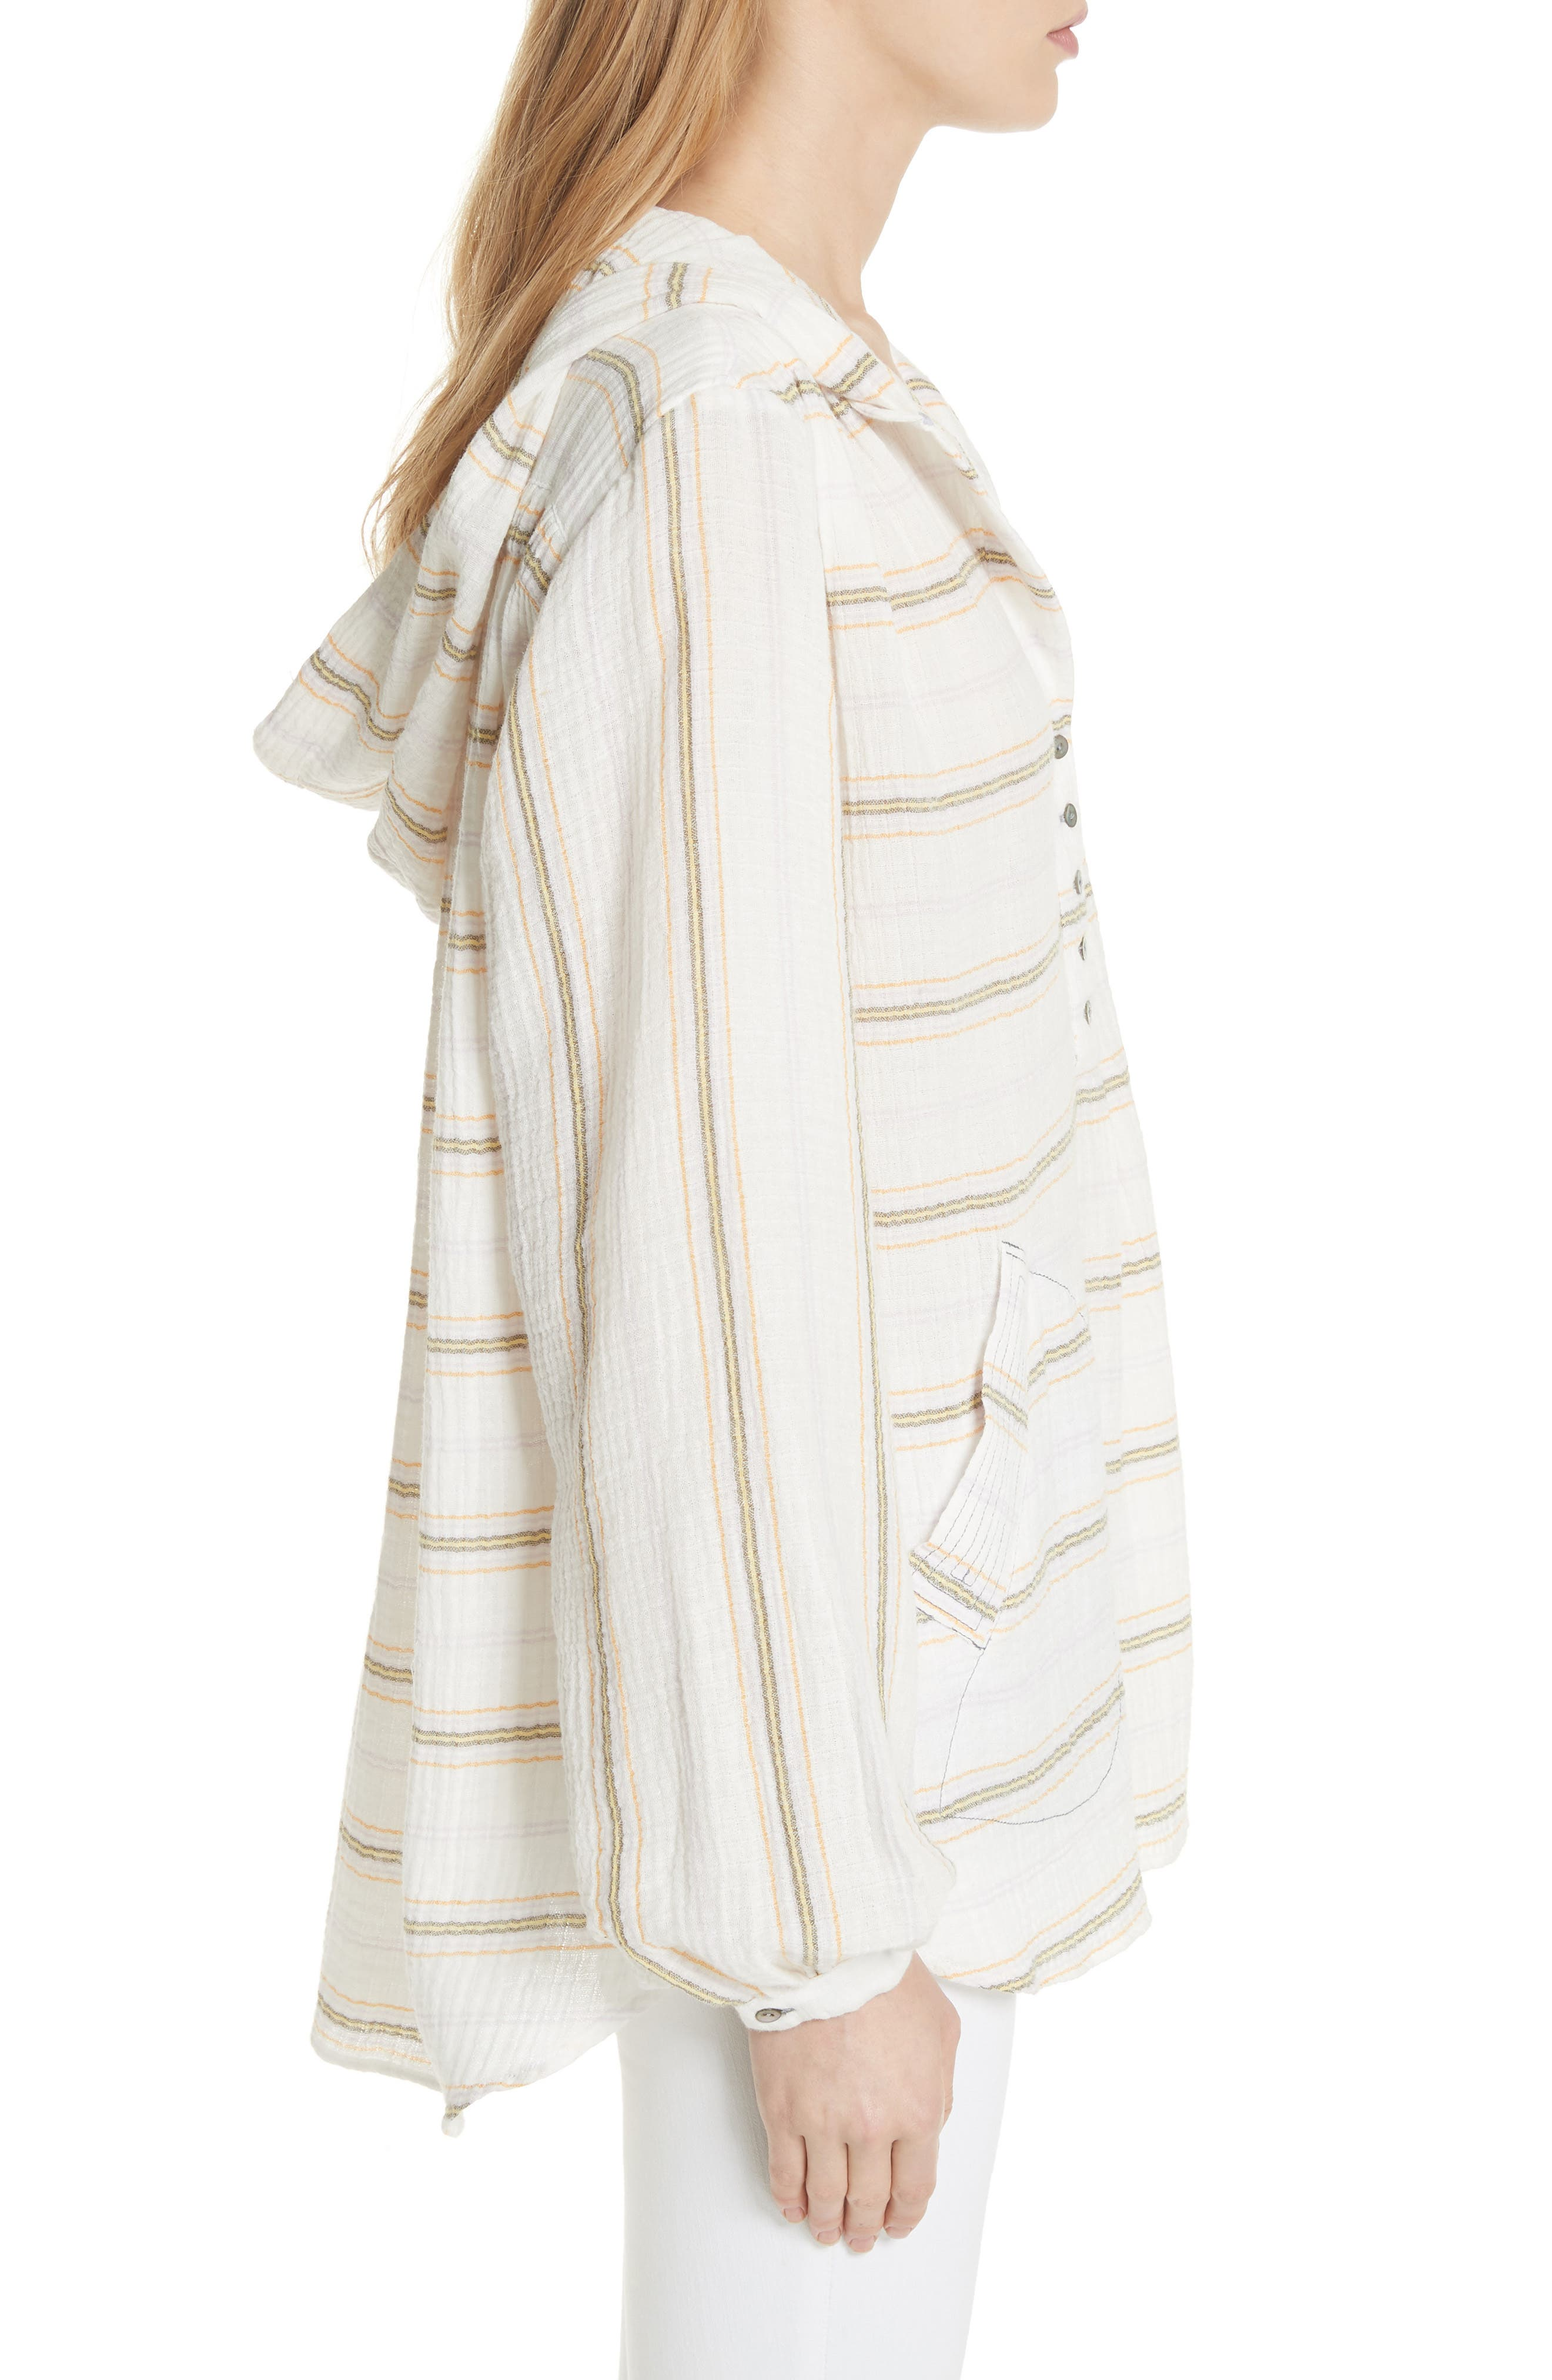 Rolling Clouds Hooded Top,                             Alternate thumbnail 3, color,                             Ivory